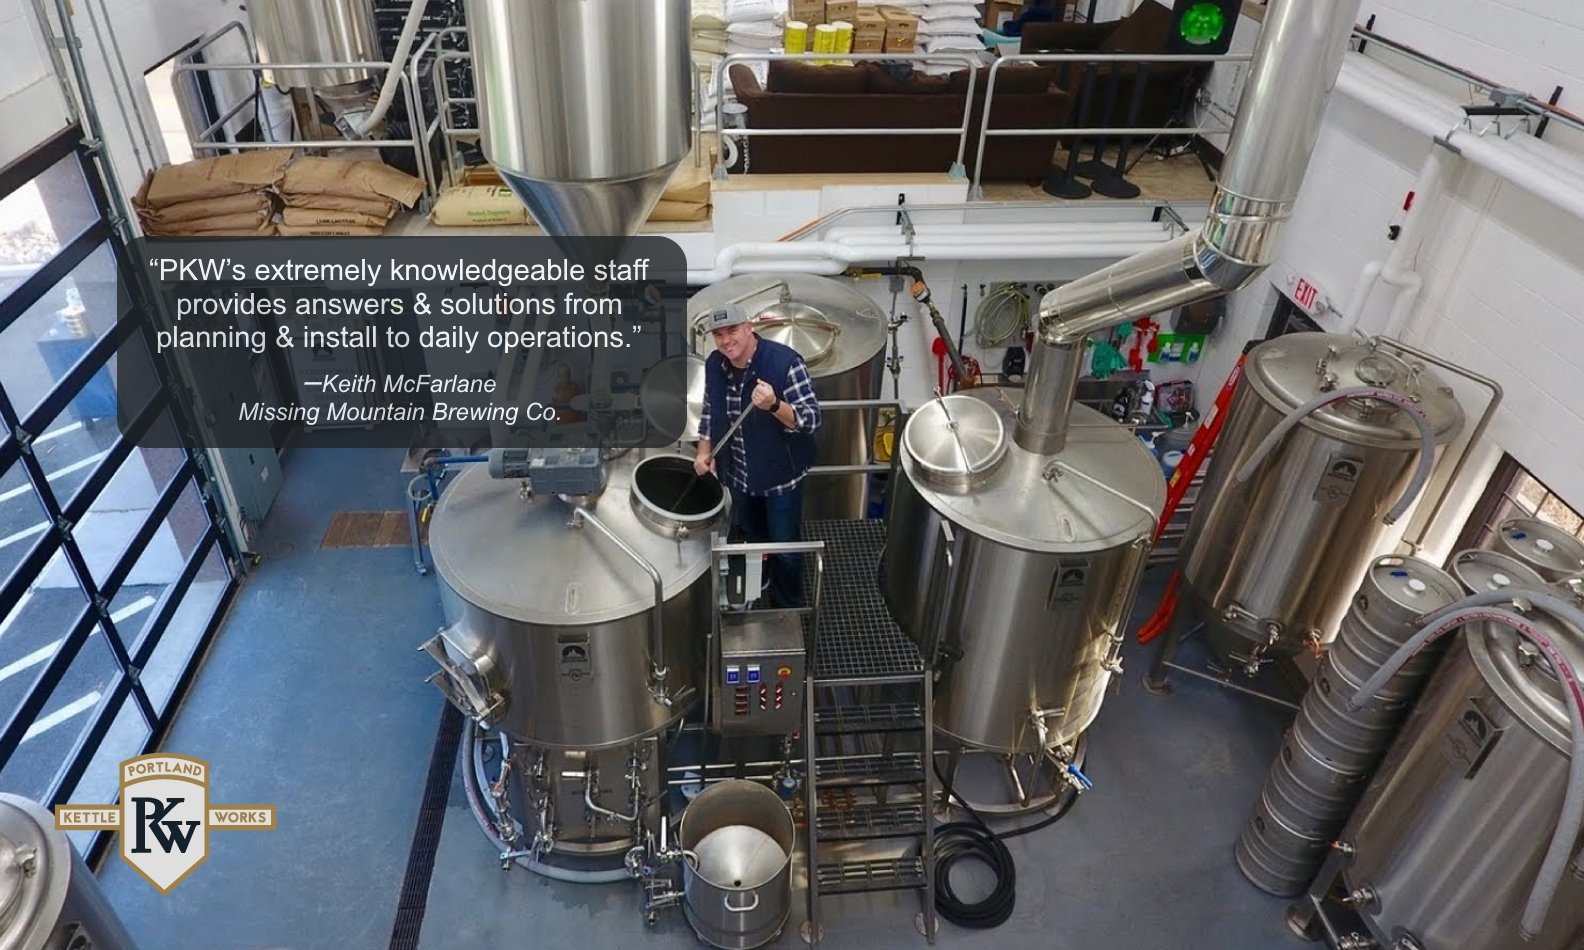 PKW Brewing Equipment at Missing Mountain Brewery with Client Testimonial